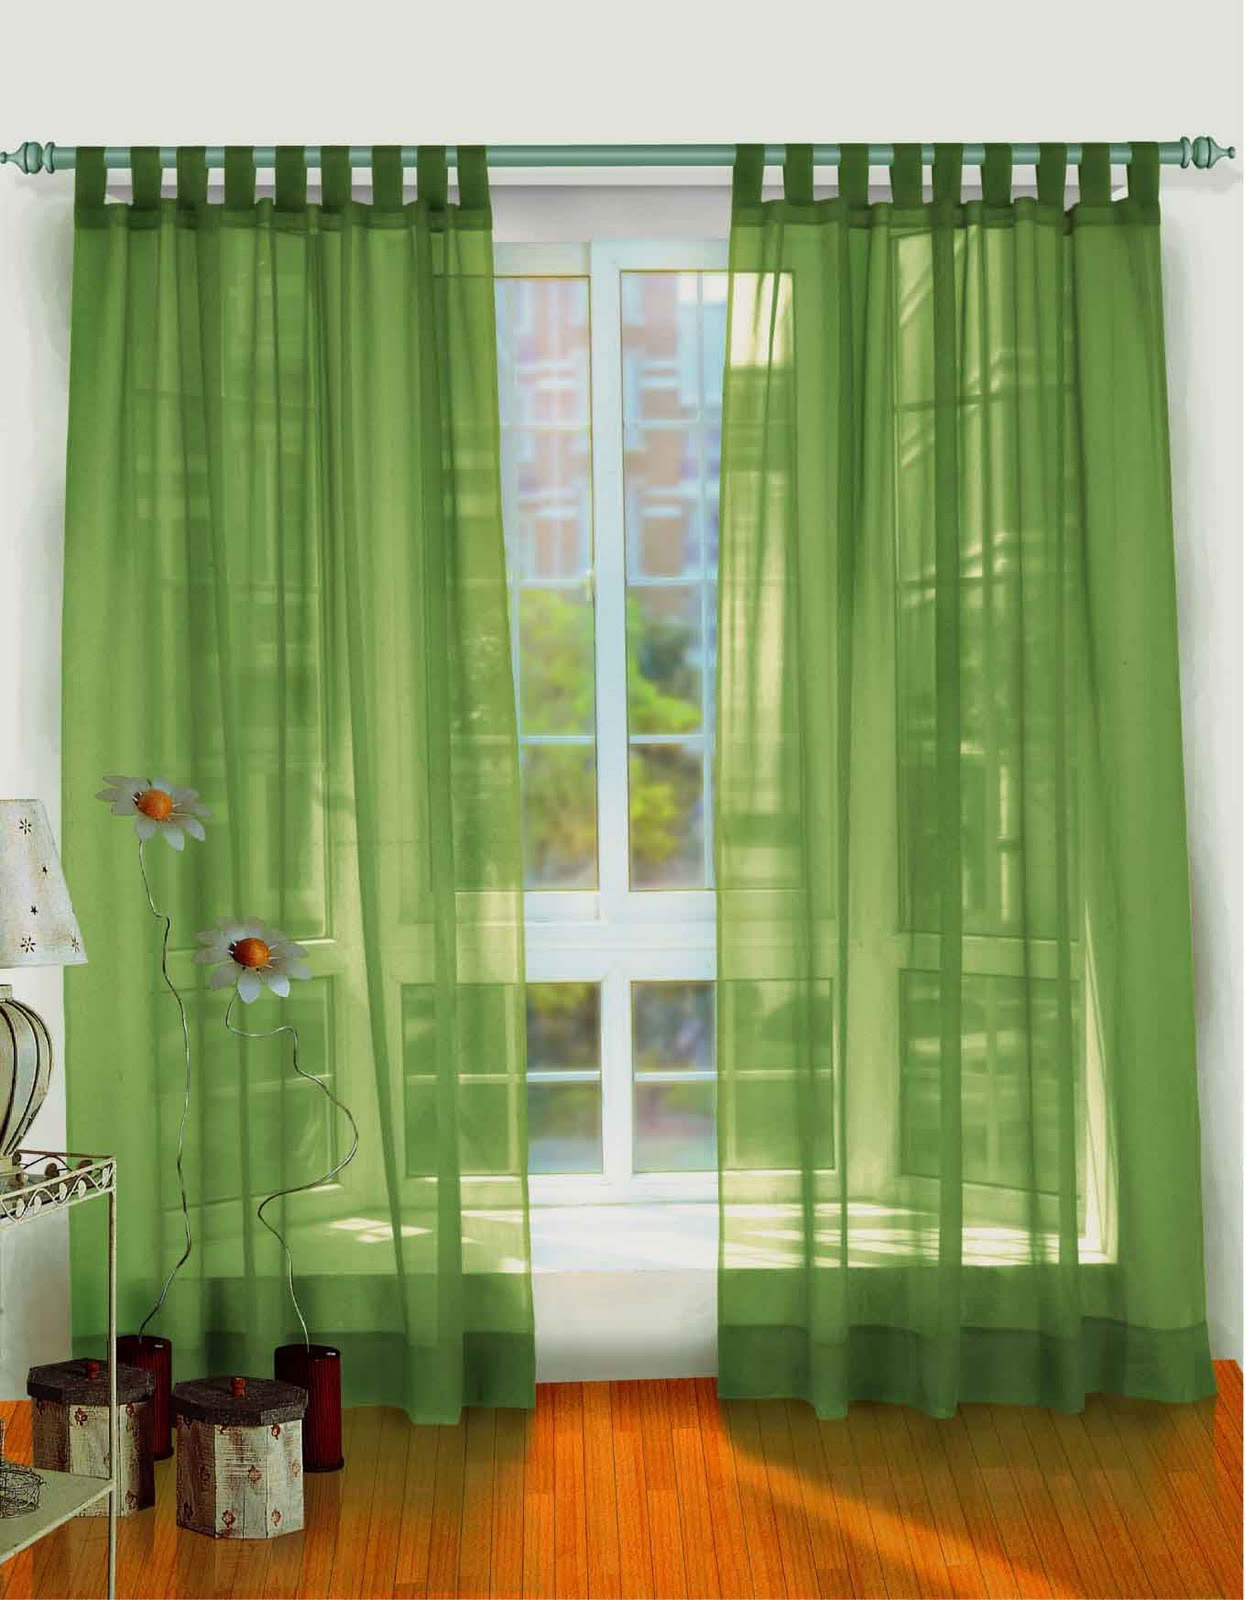 Modern Furniture: Living room curtains ideas 2011 on Living Room Drapes Ideas  id=73392